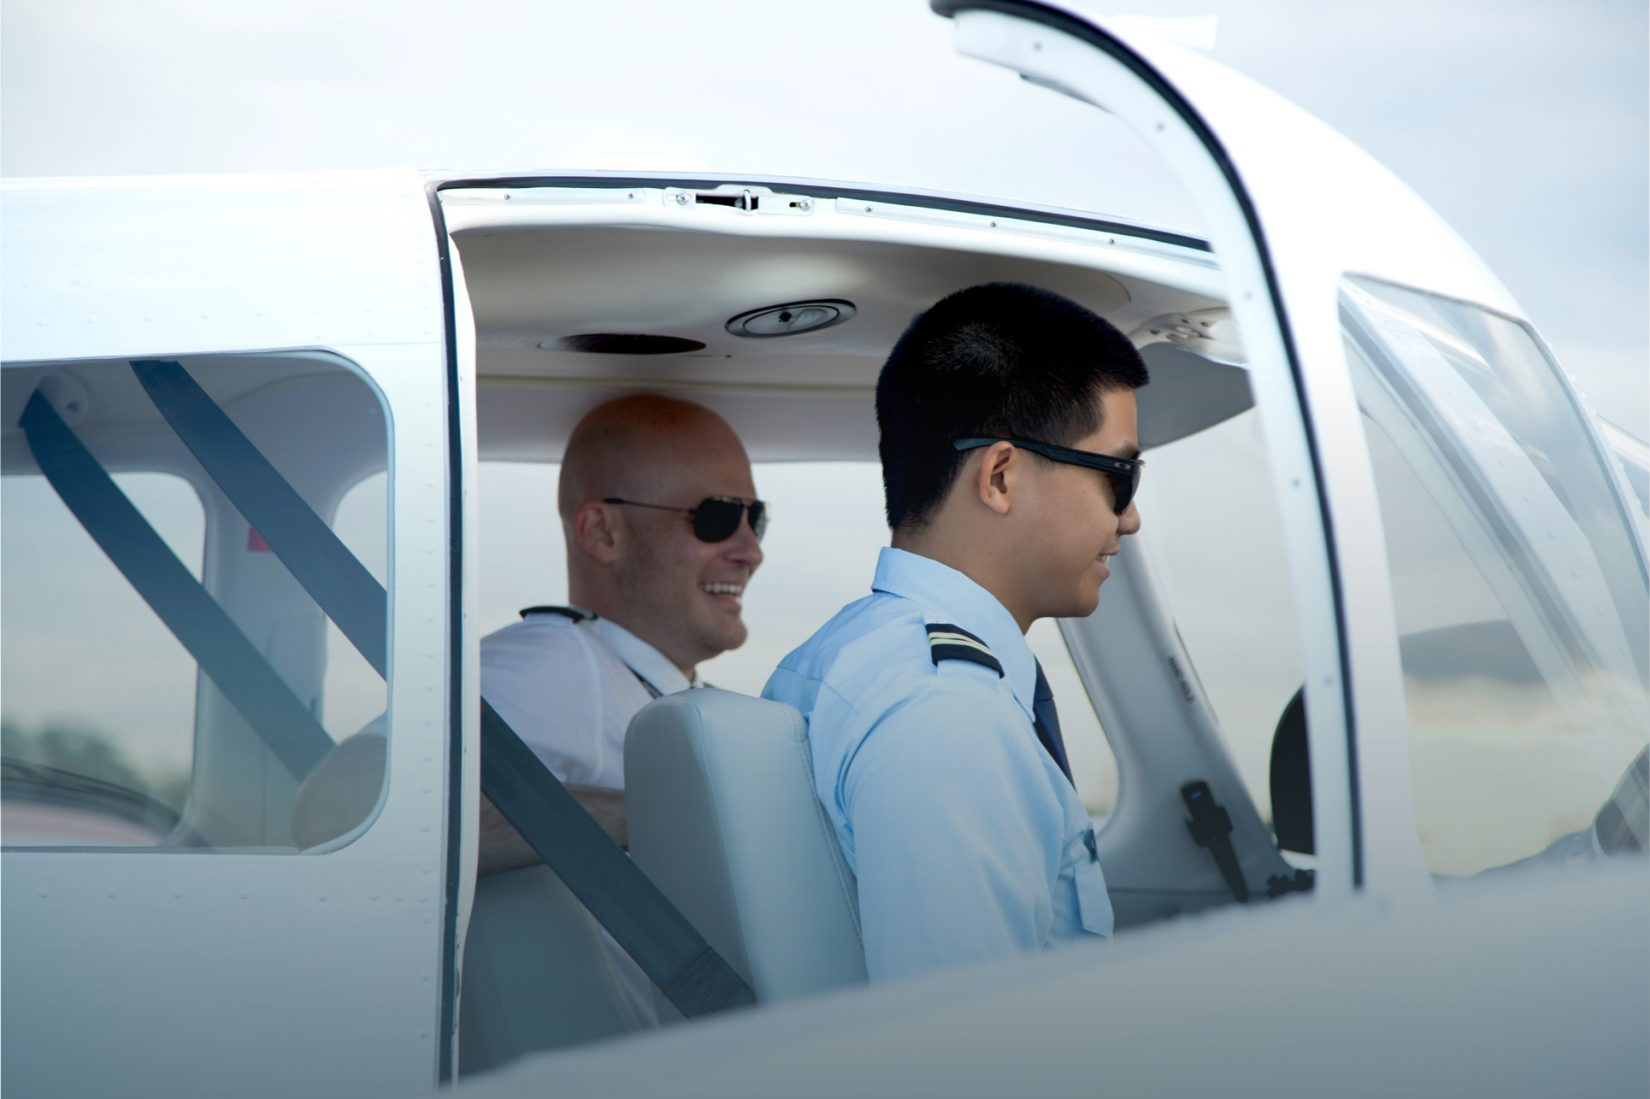 Pilot sitting in cockpit with student pilot